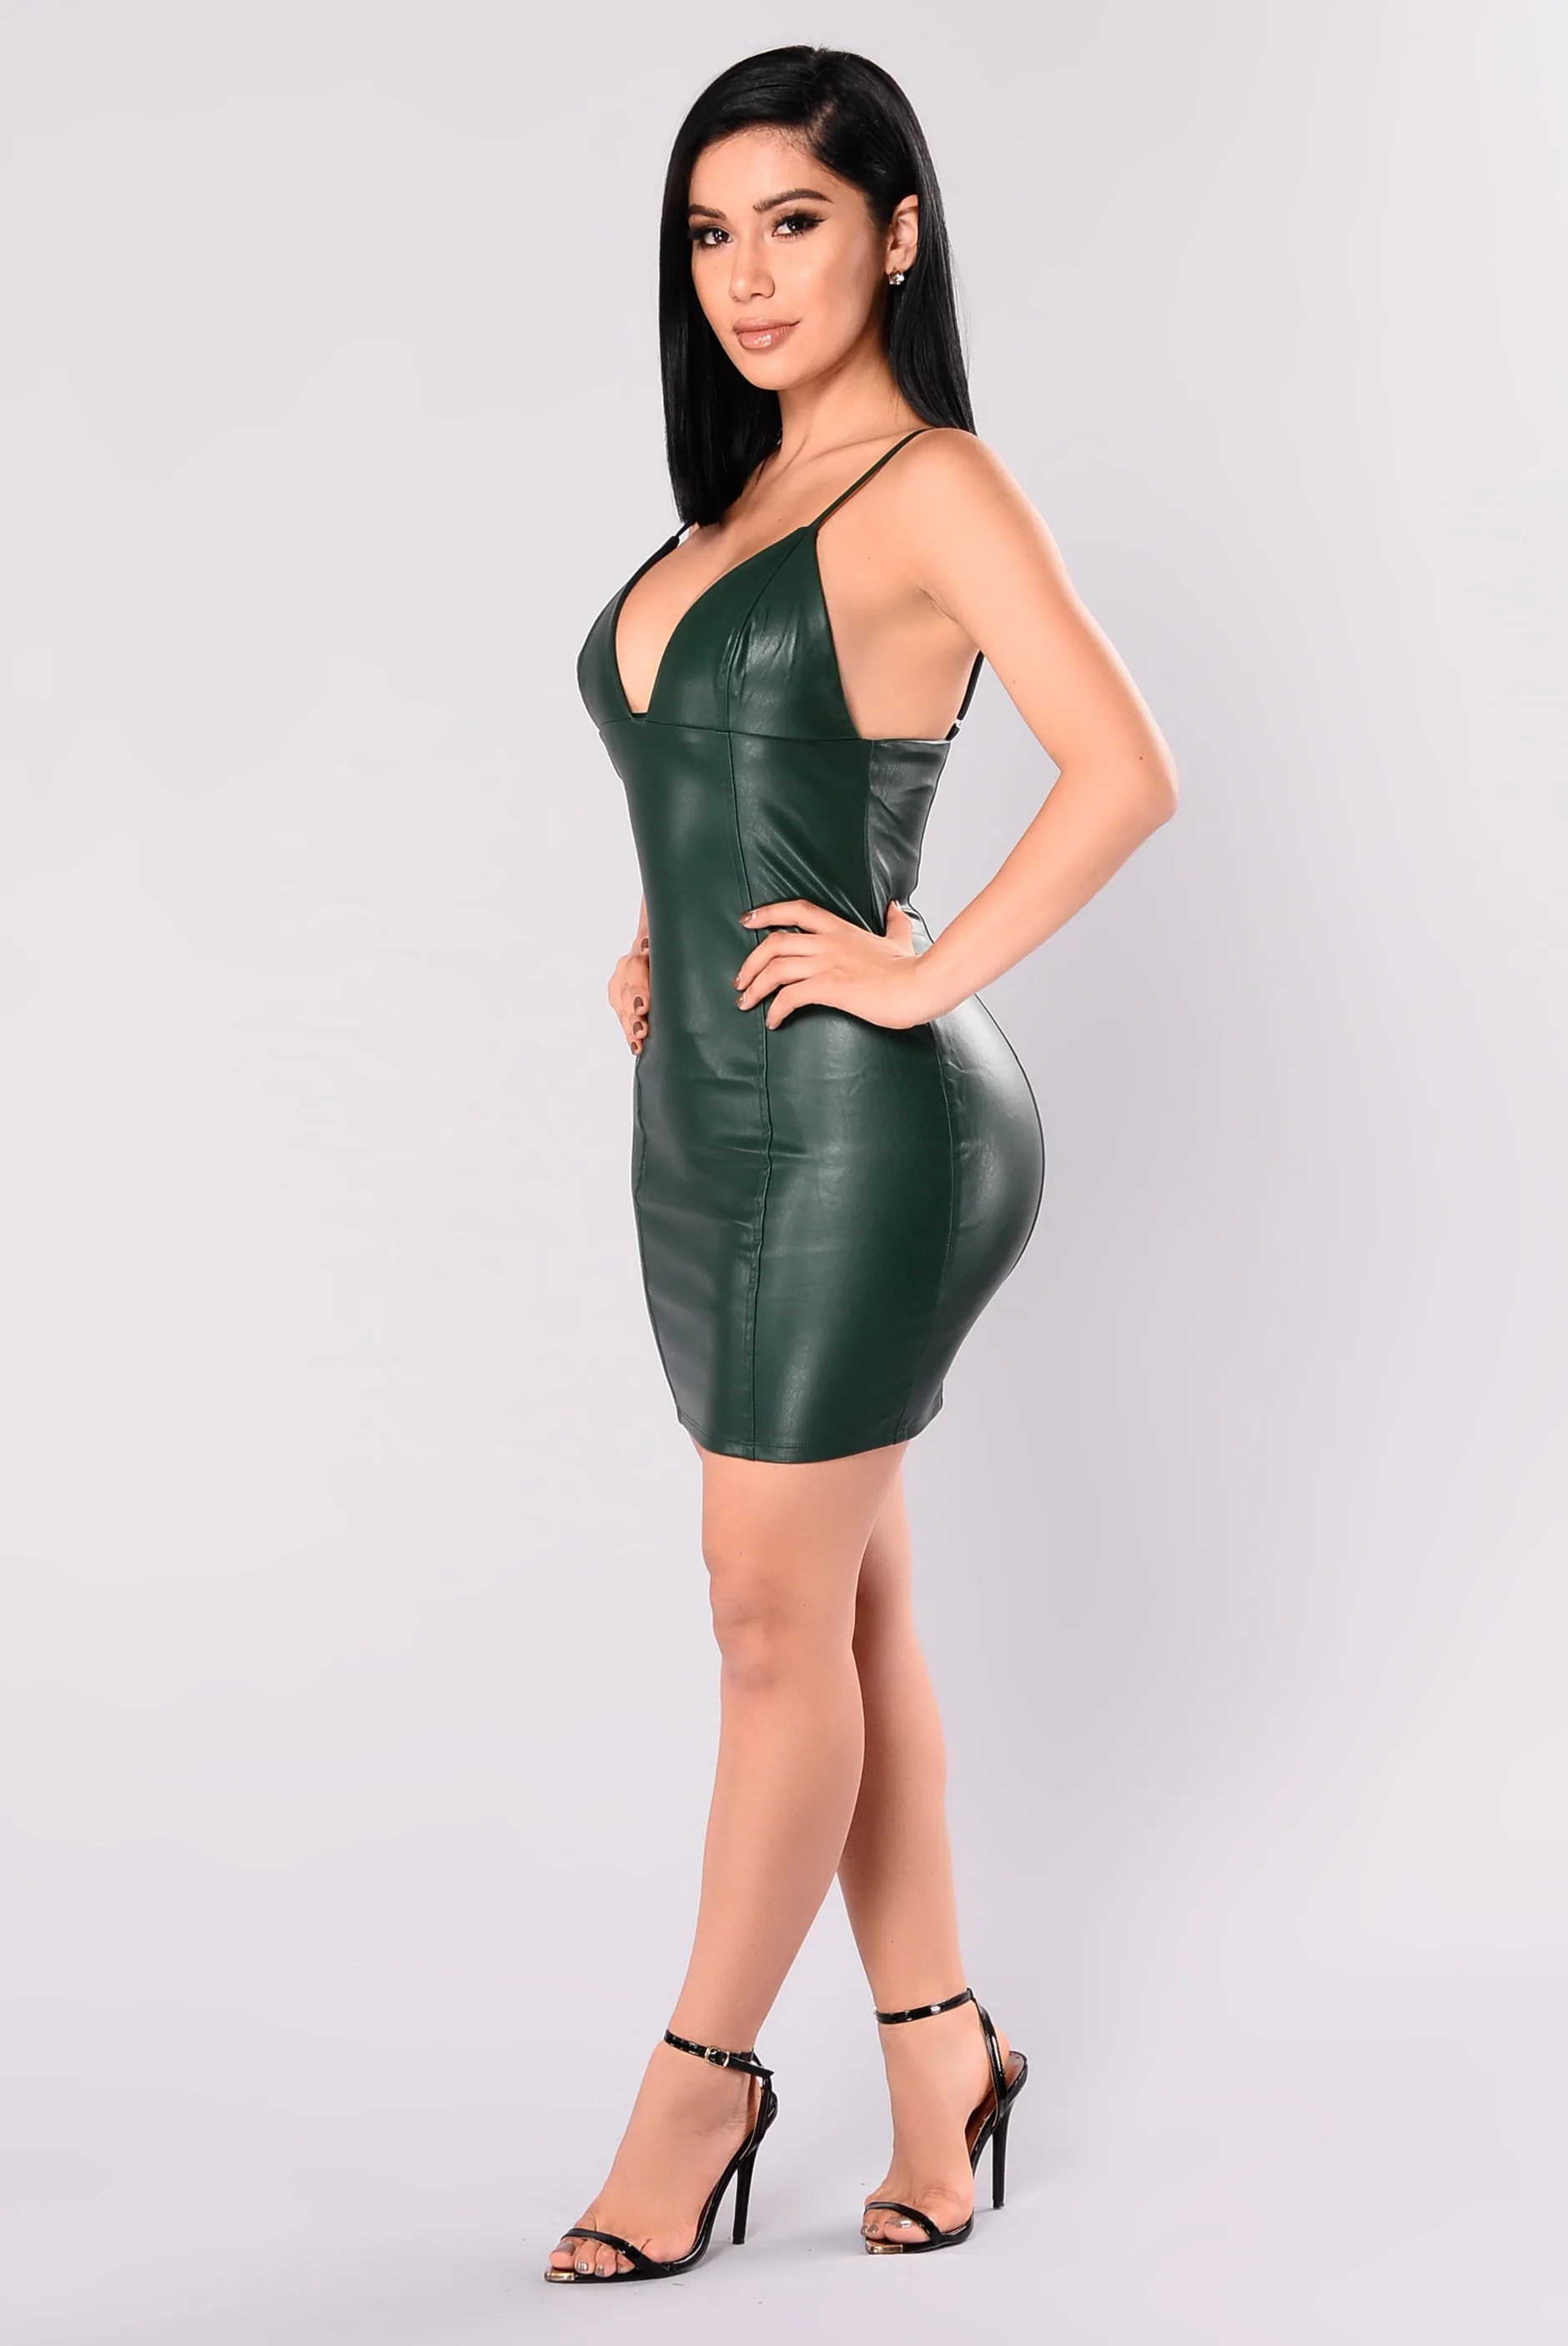 Midnight Rider Faux Leather Dress - Green